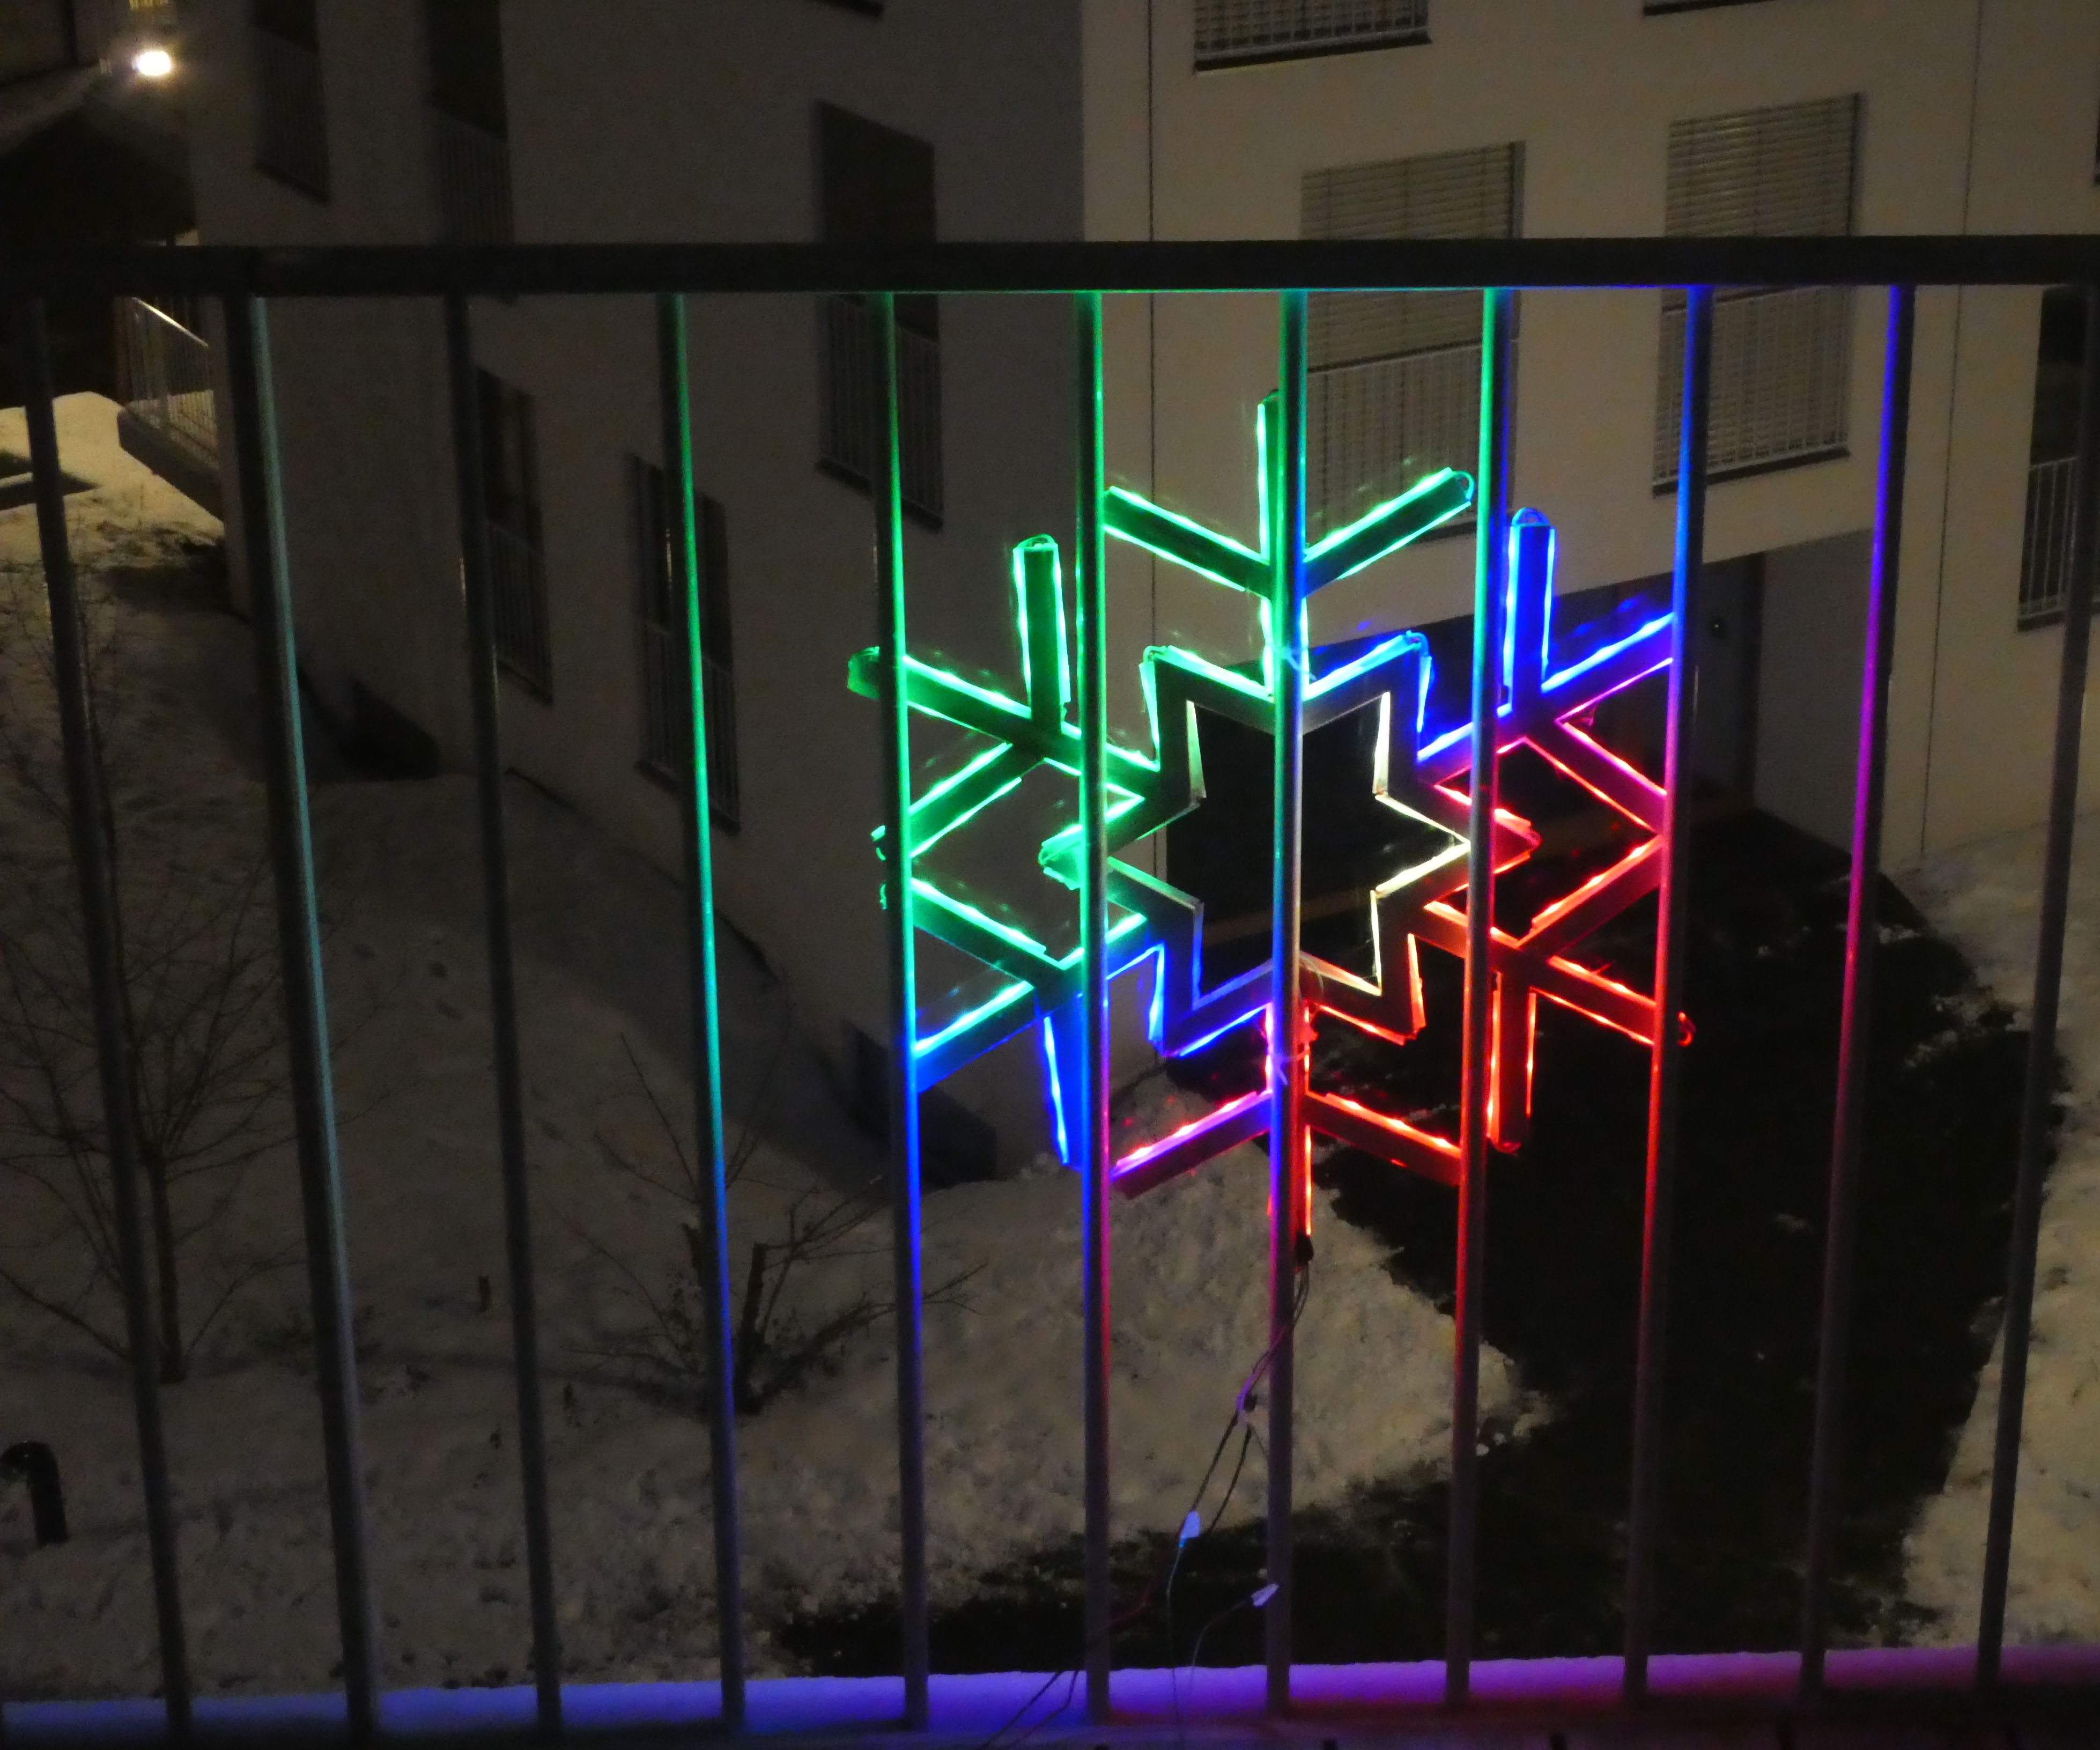 LED Strip Snowflake / Star Animations: 5 Steps